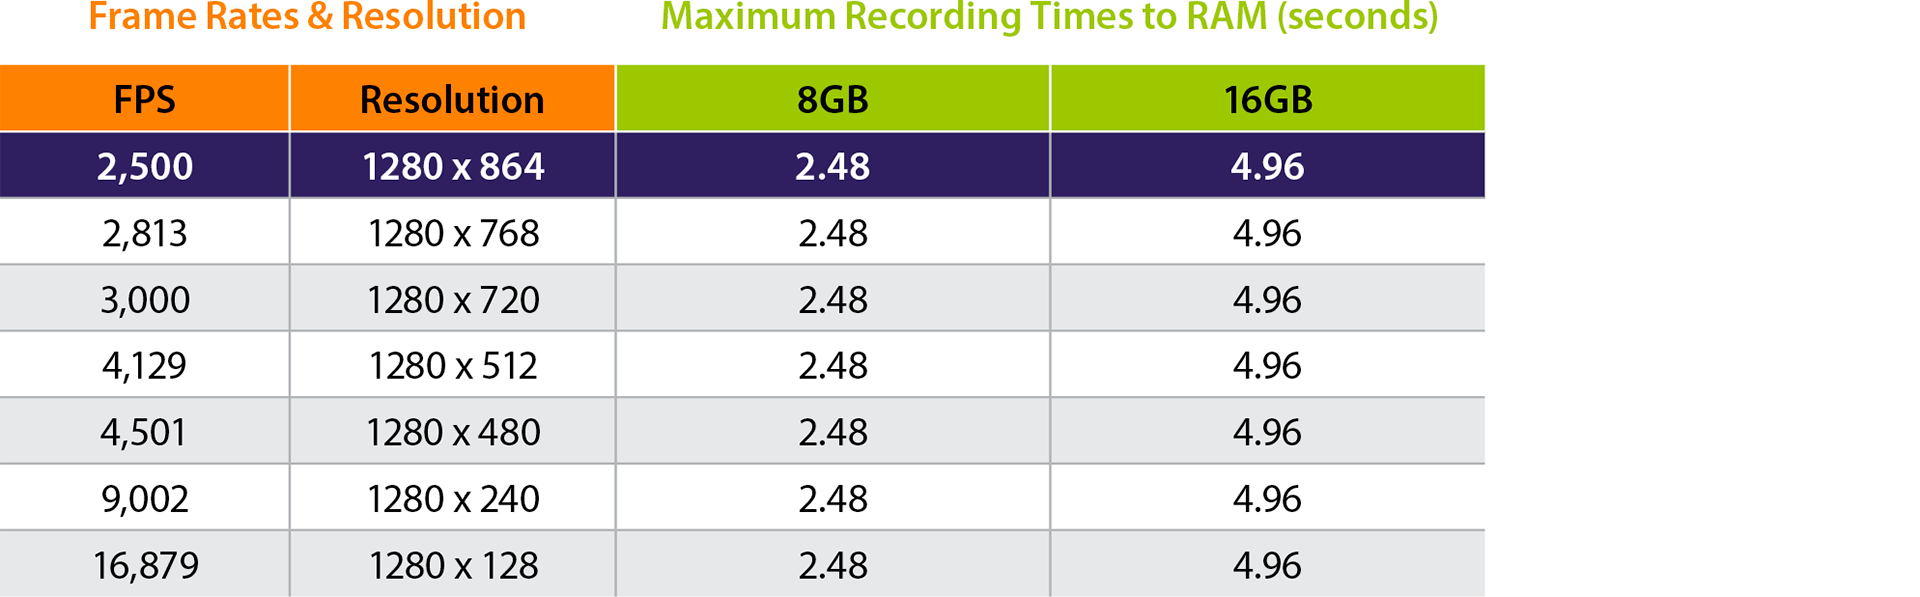 i-SPEED 230 Frame Rates, Resolutions & Recording Durations to RAM.